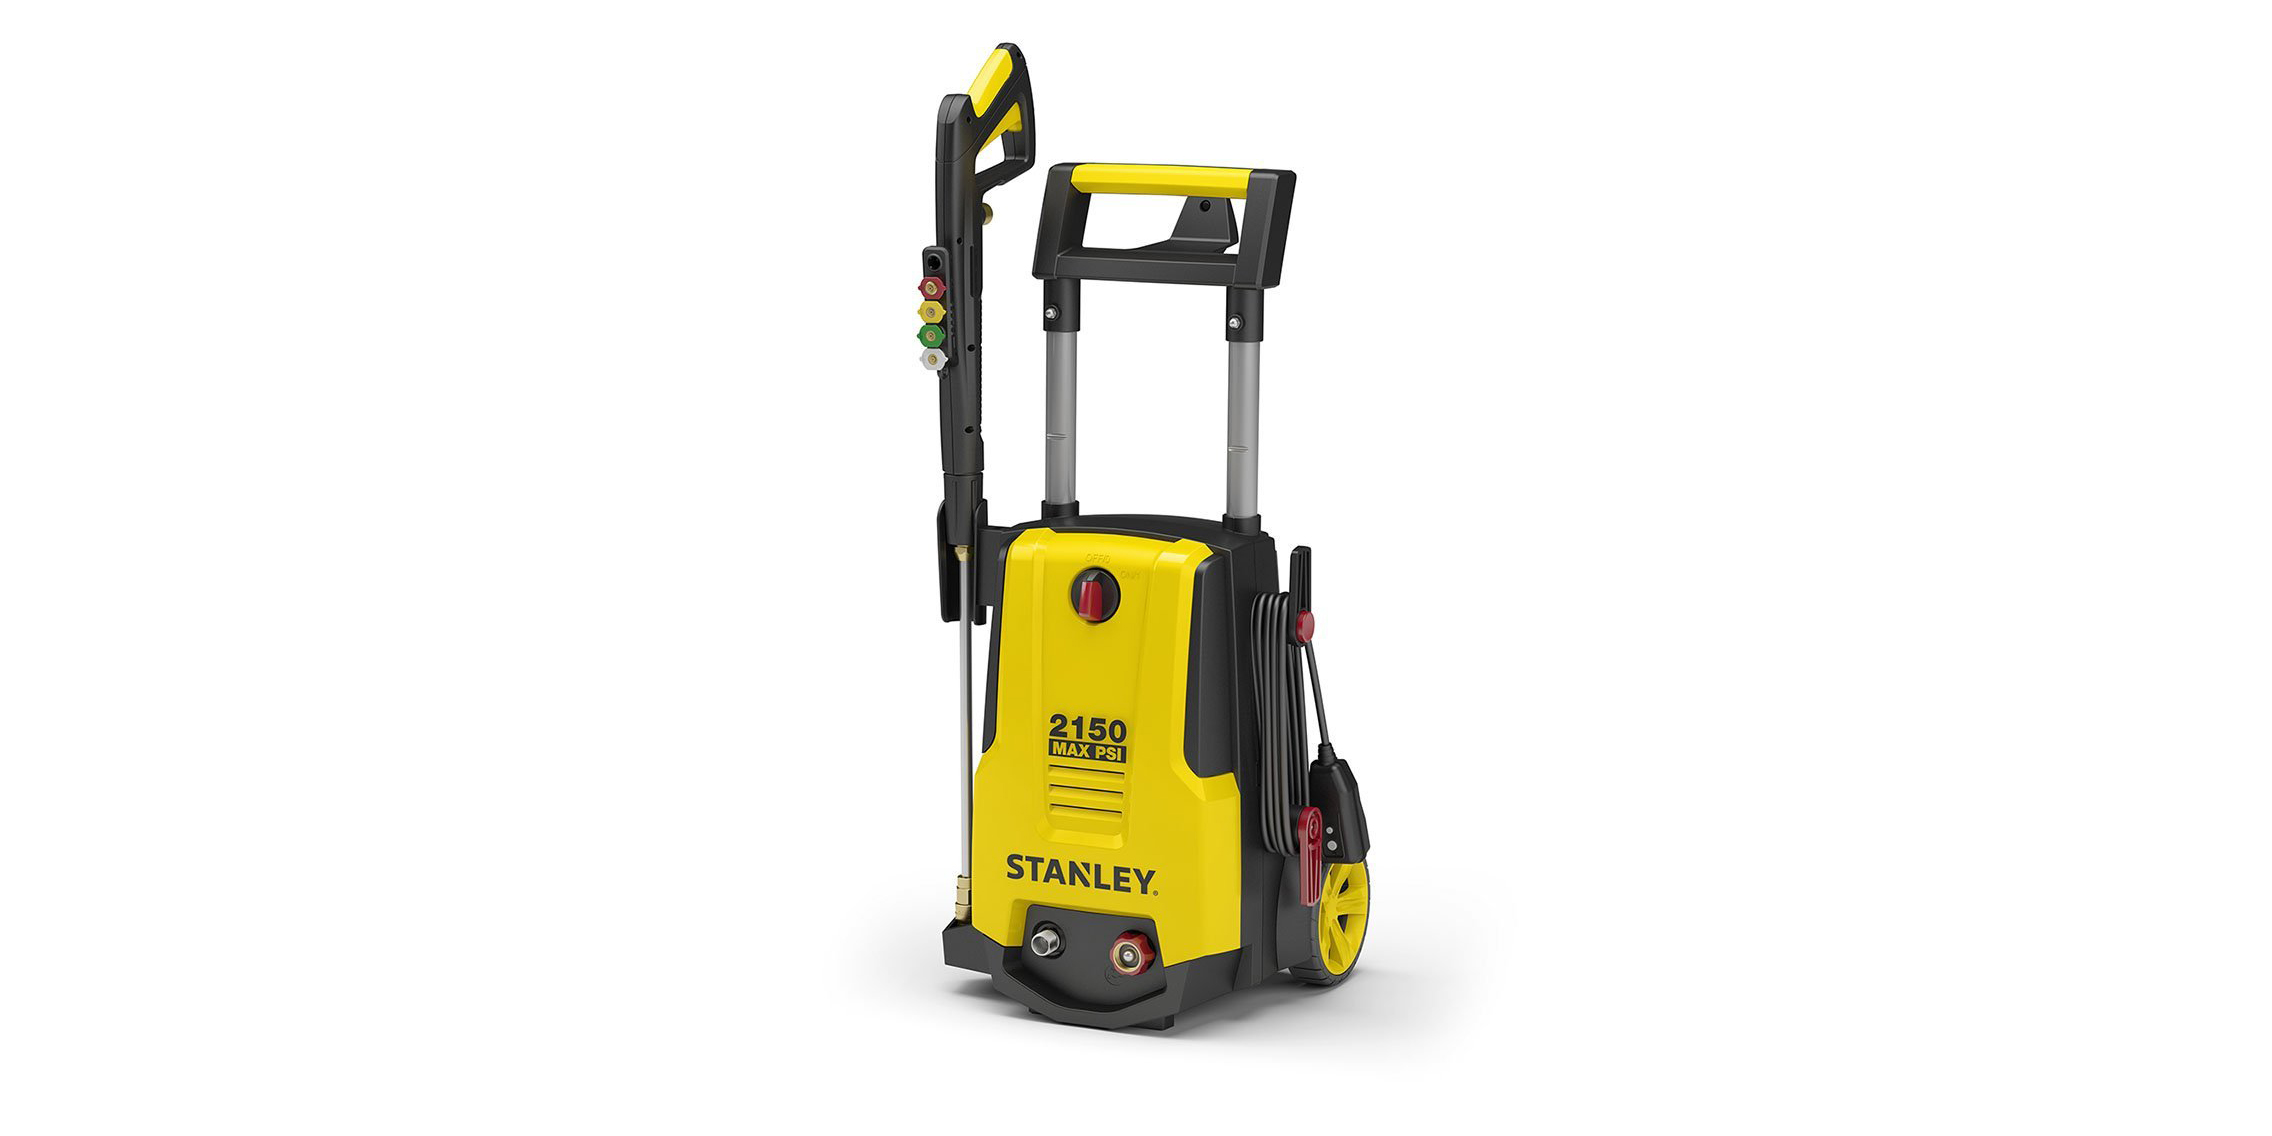 Green Deals: Stanley 2150PSI Electric Pressure Washer $140, more